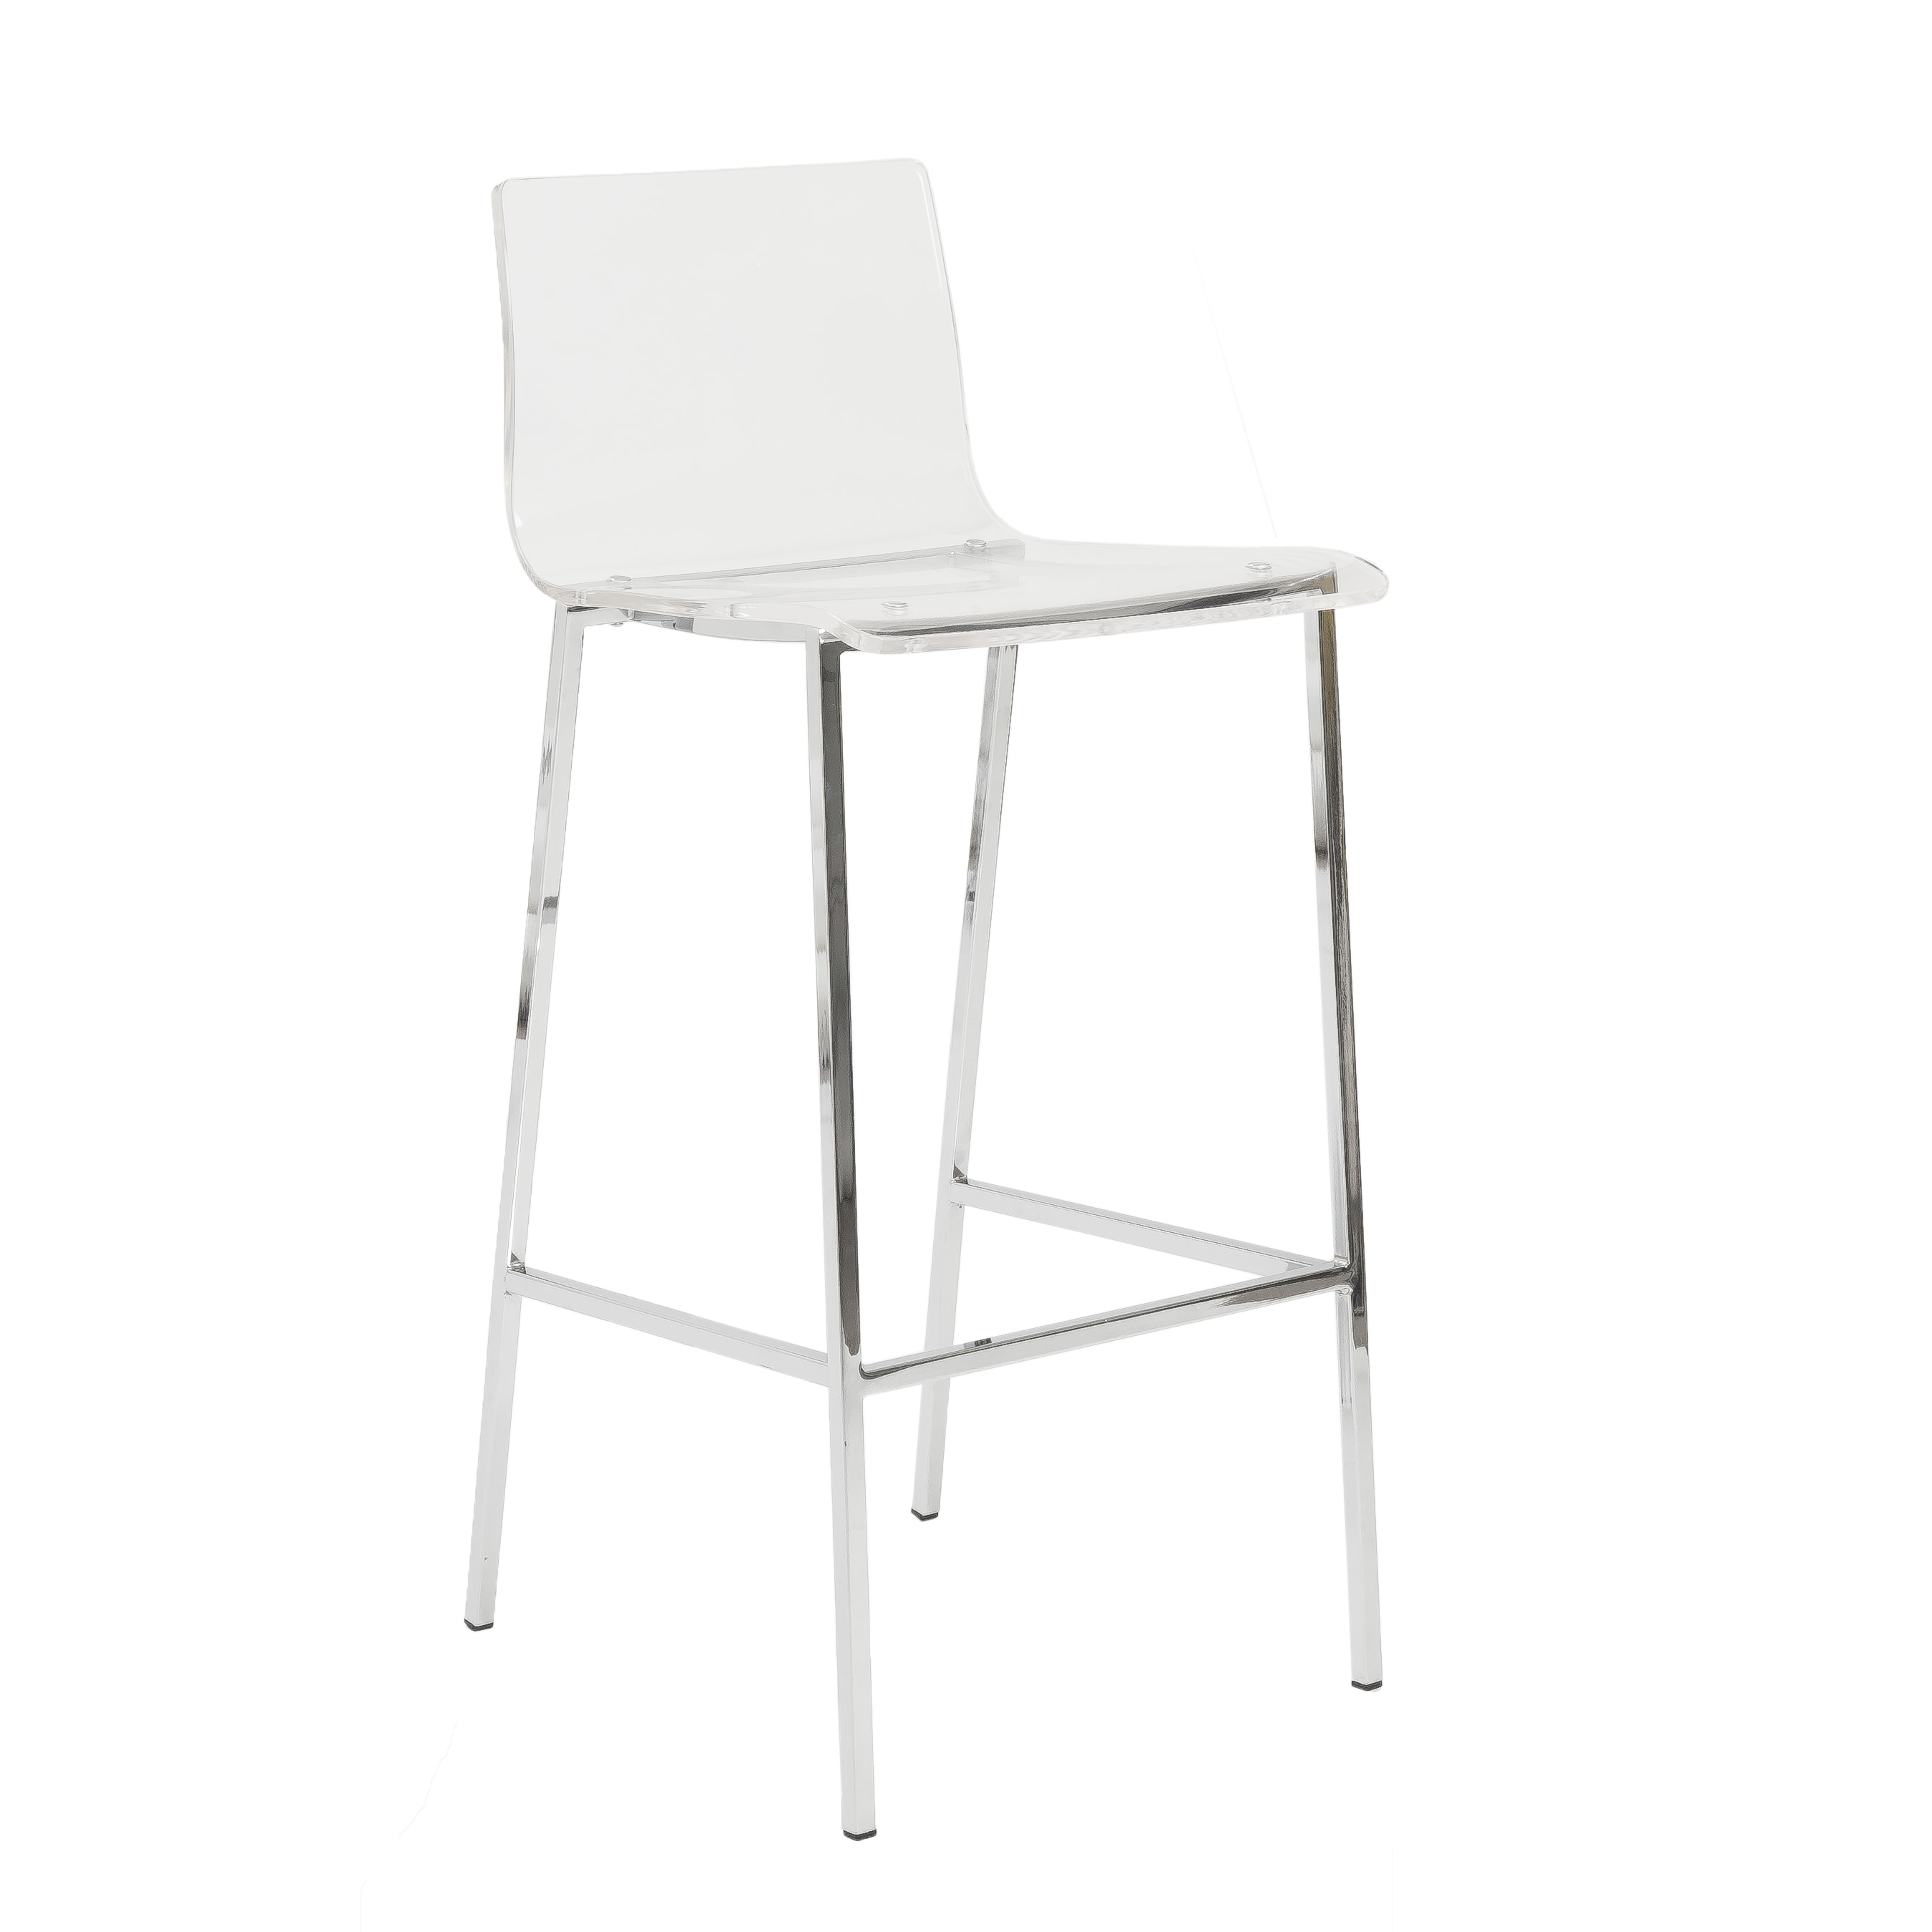 Shop chloe 30 inch clear chrome bar stool set of 2 free shipping today overstock com 10677028